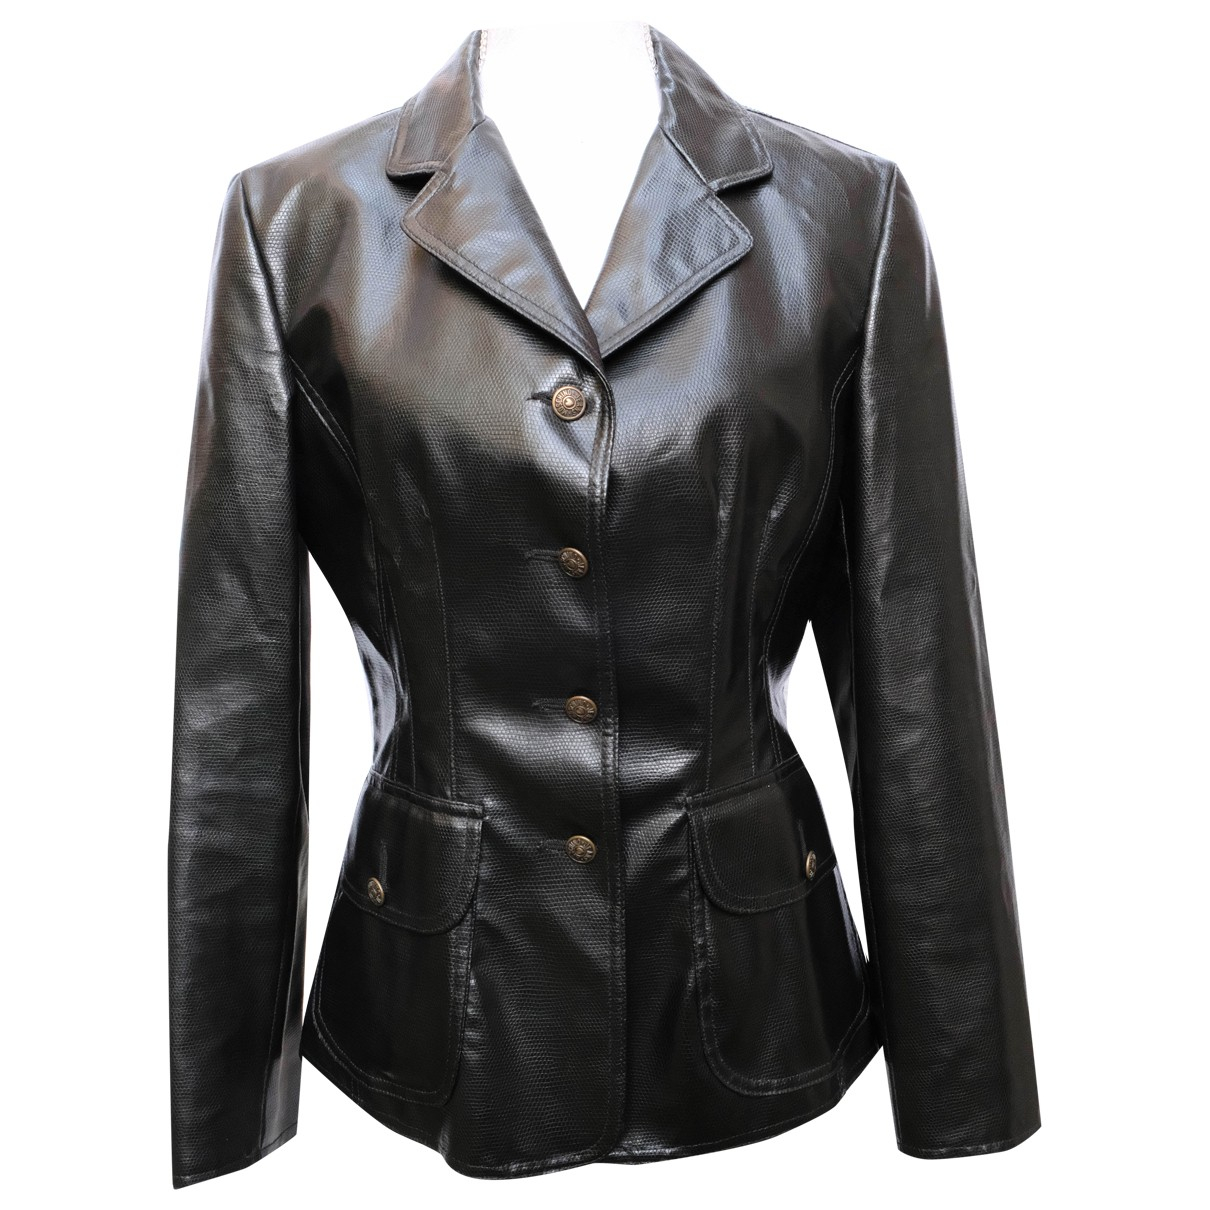 Moschino Cheap And Chic \N Black jacket for Women M International